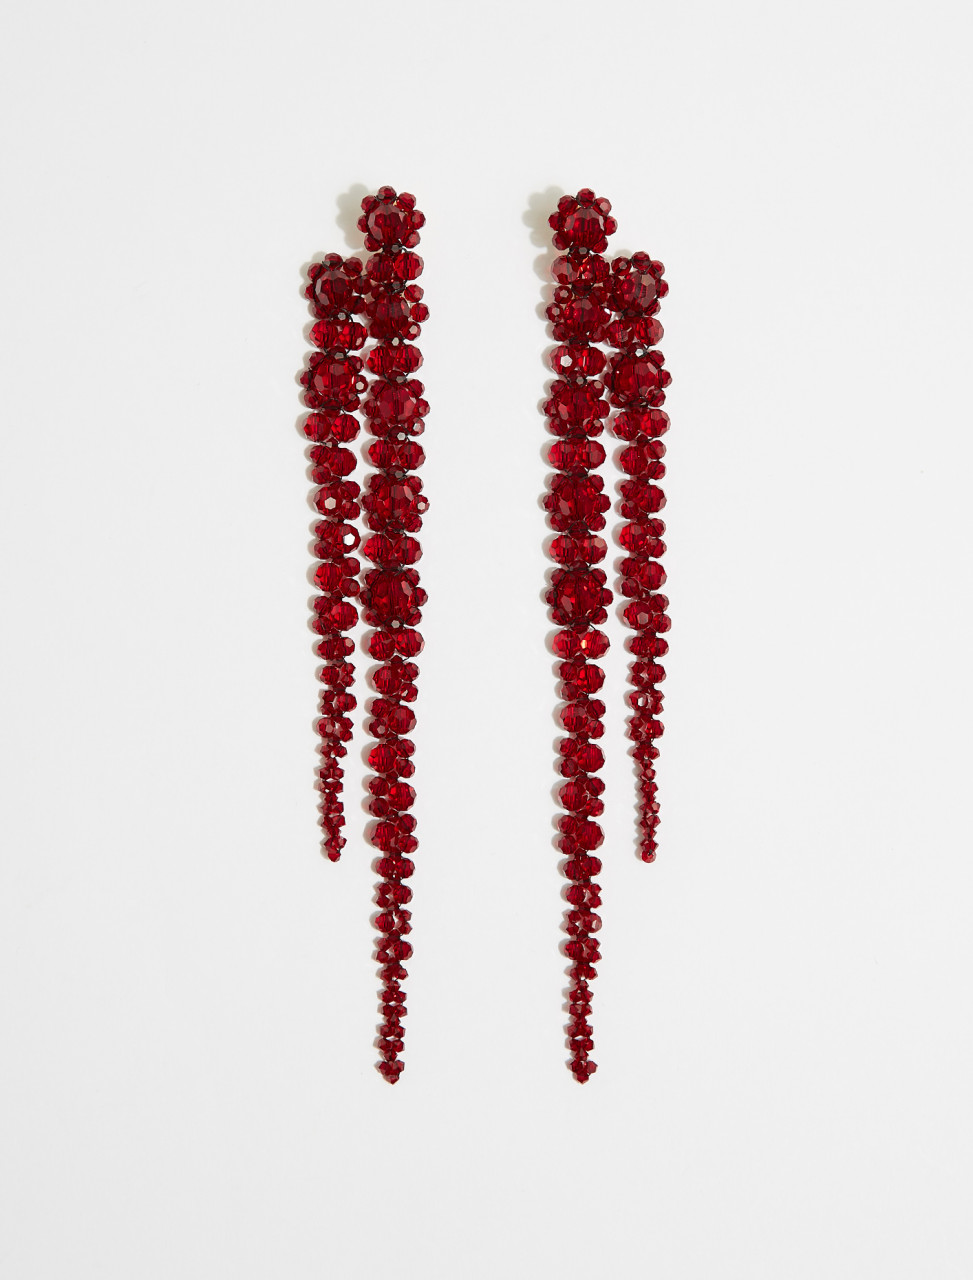 ERG221-0903-BR SIMONE ROCHA DOUBLE DRIP EARRING BLOOD RED